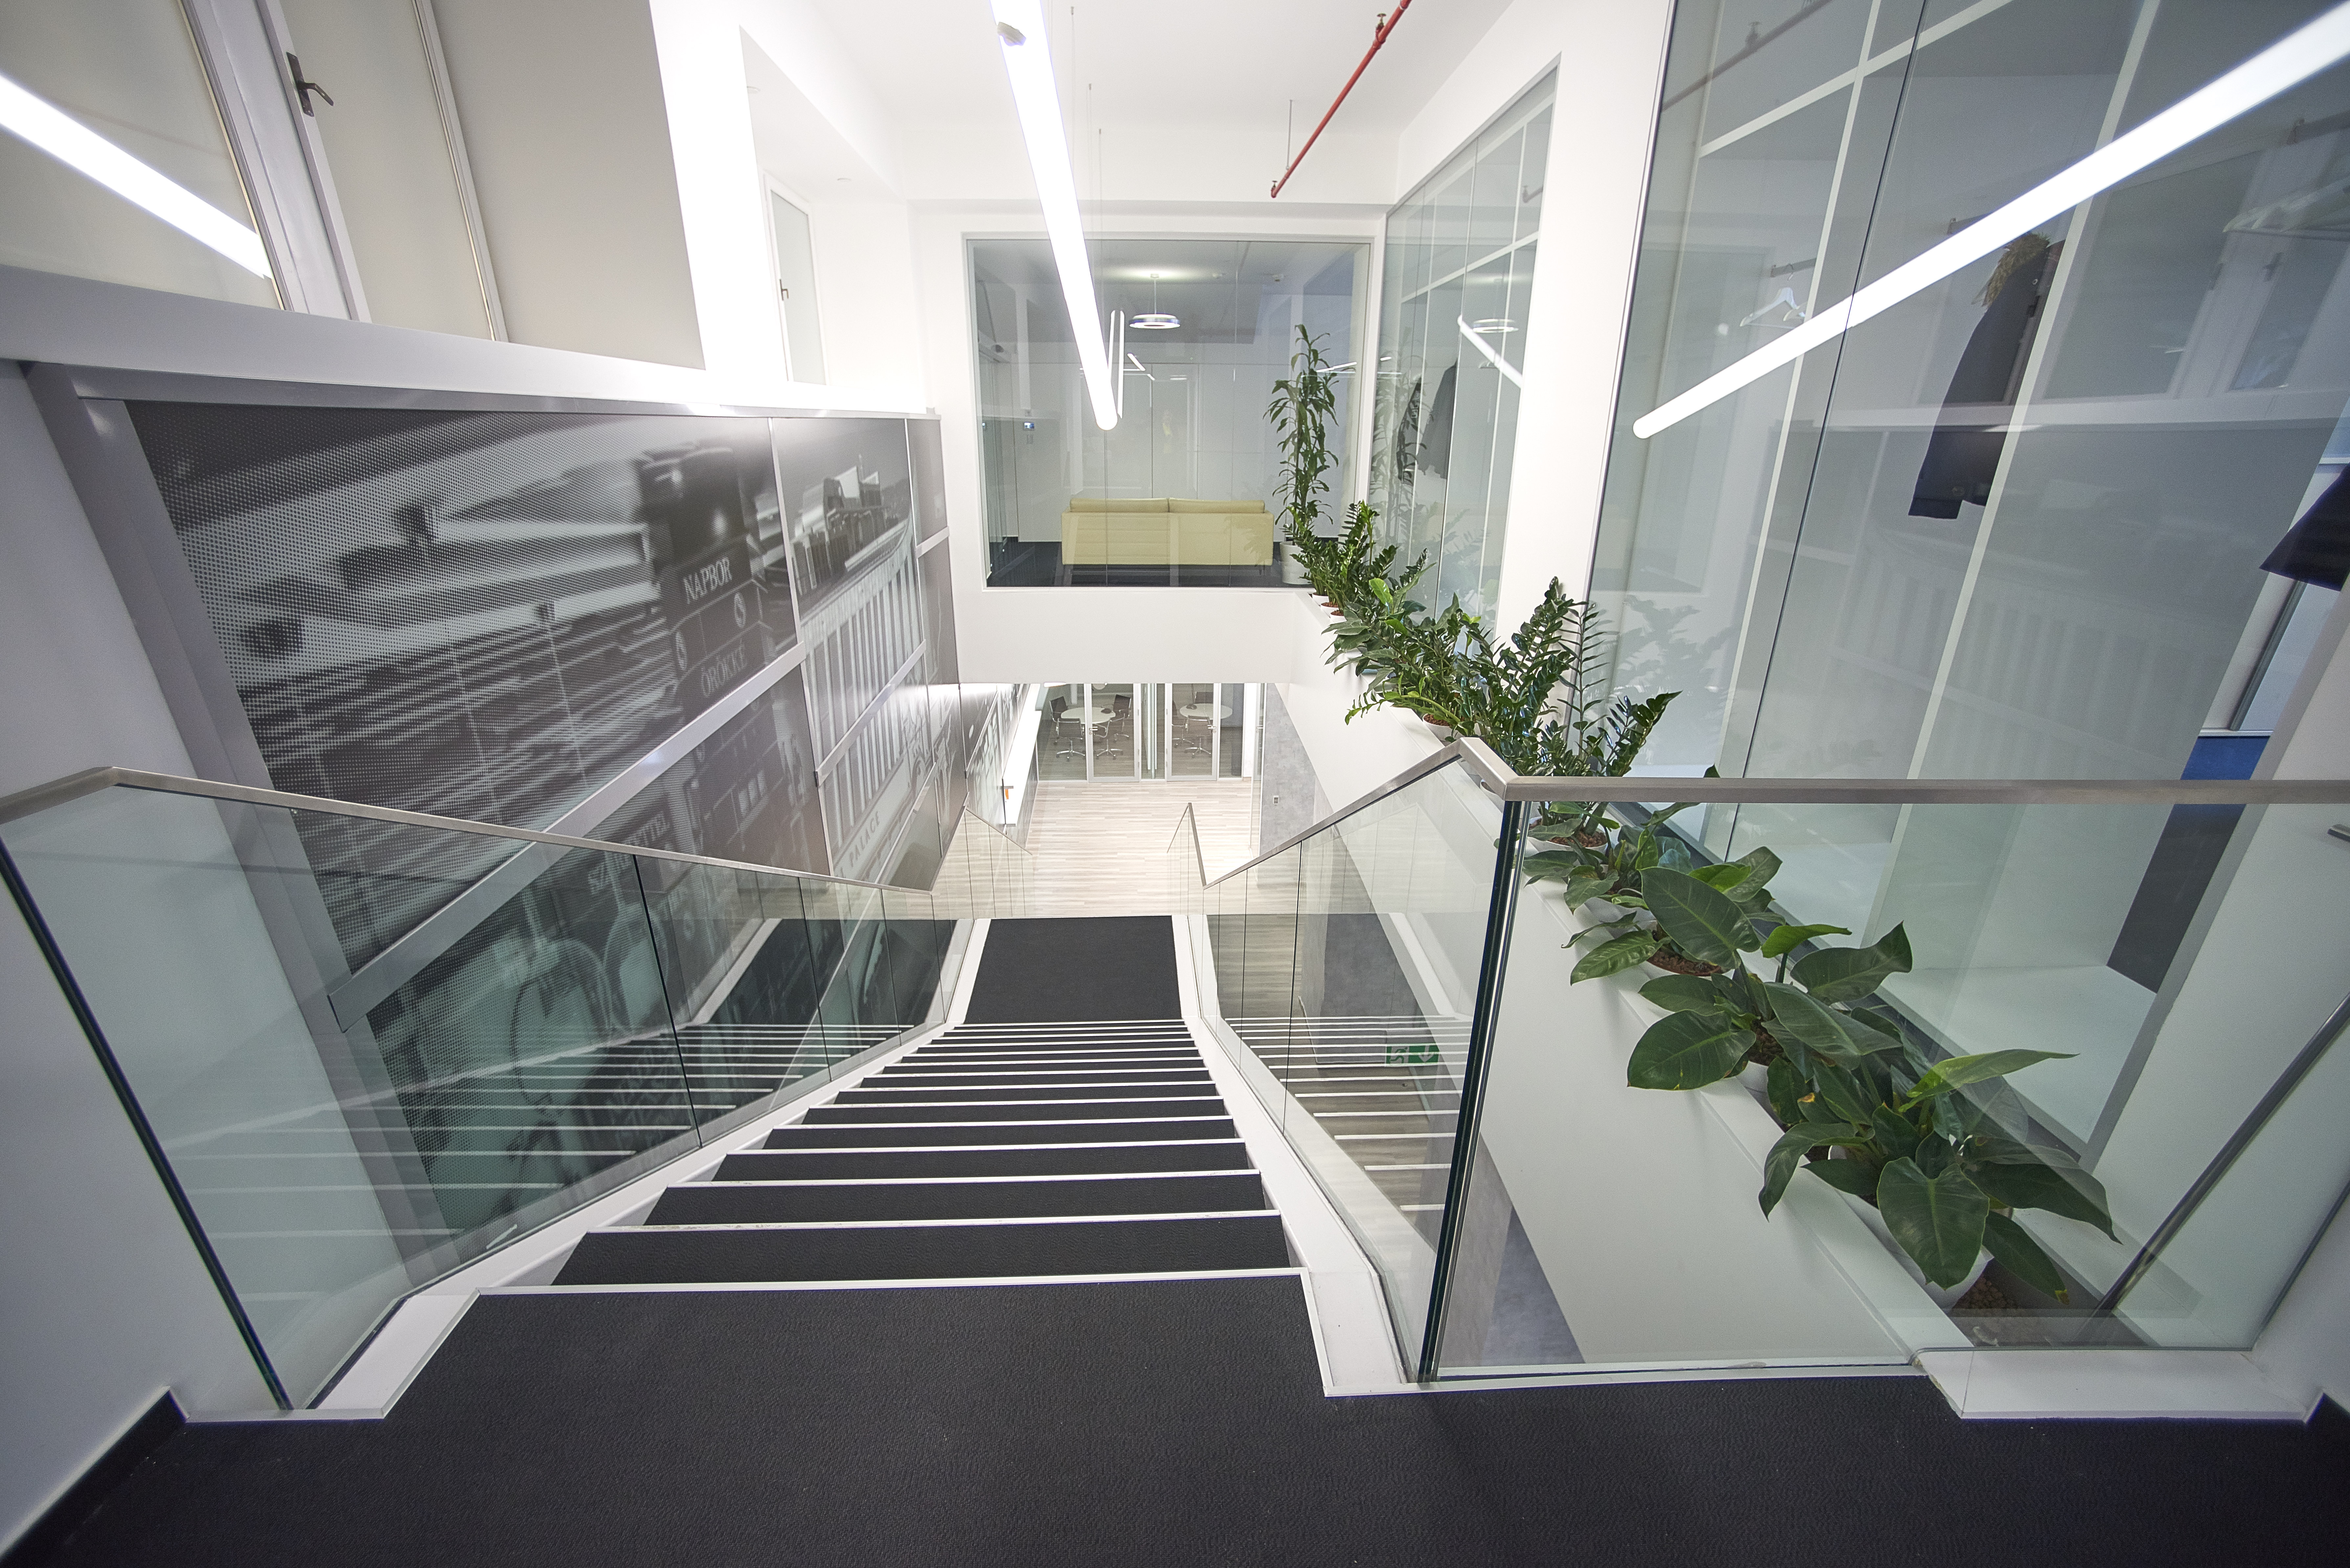 24._modern_staircase_on_office_premises_vaci1_budapest_hungary